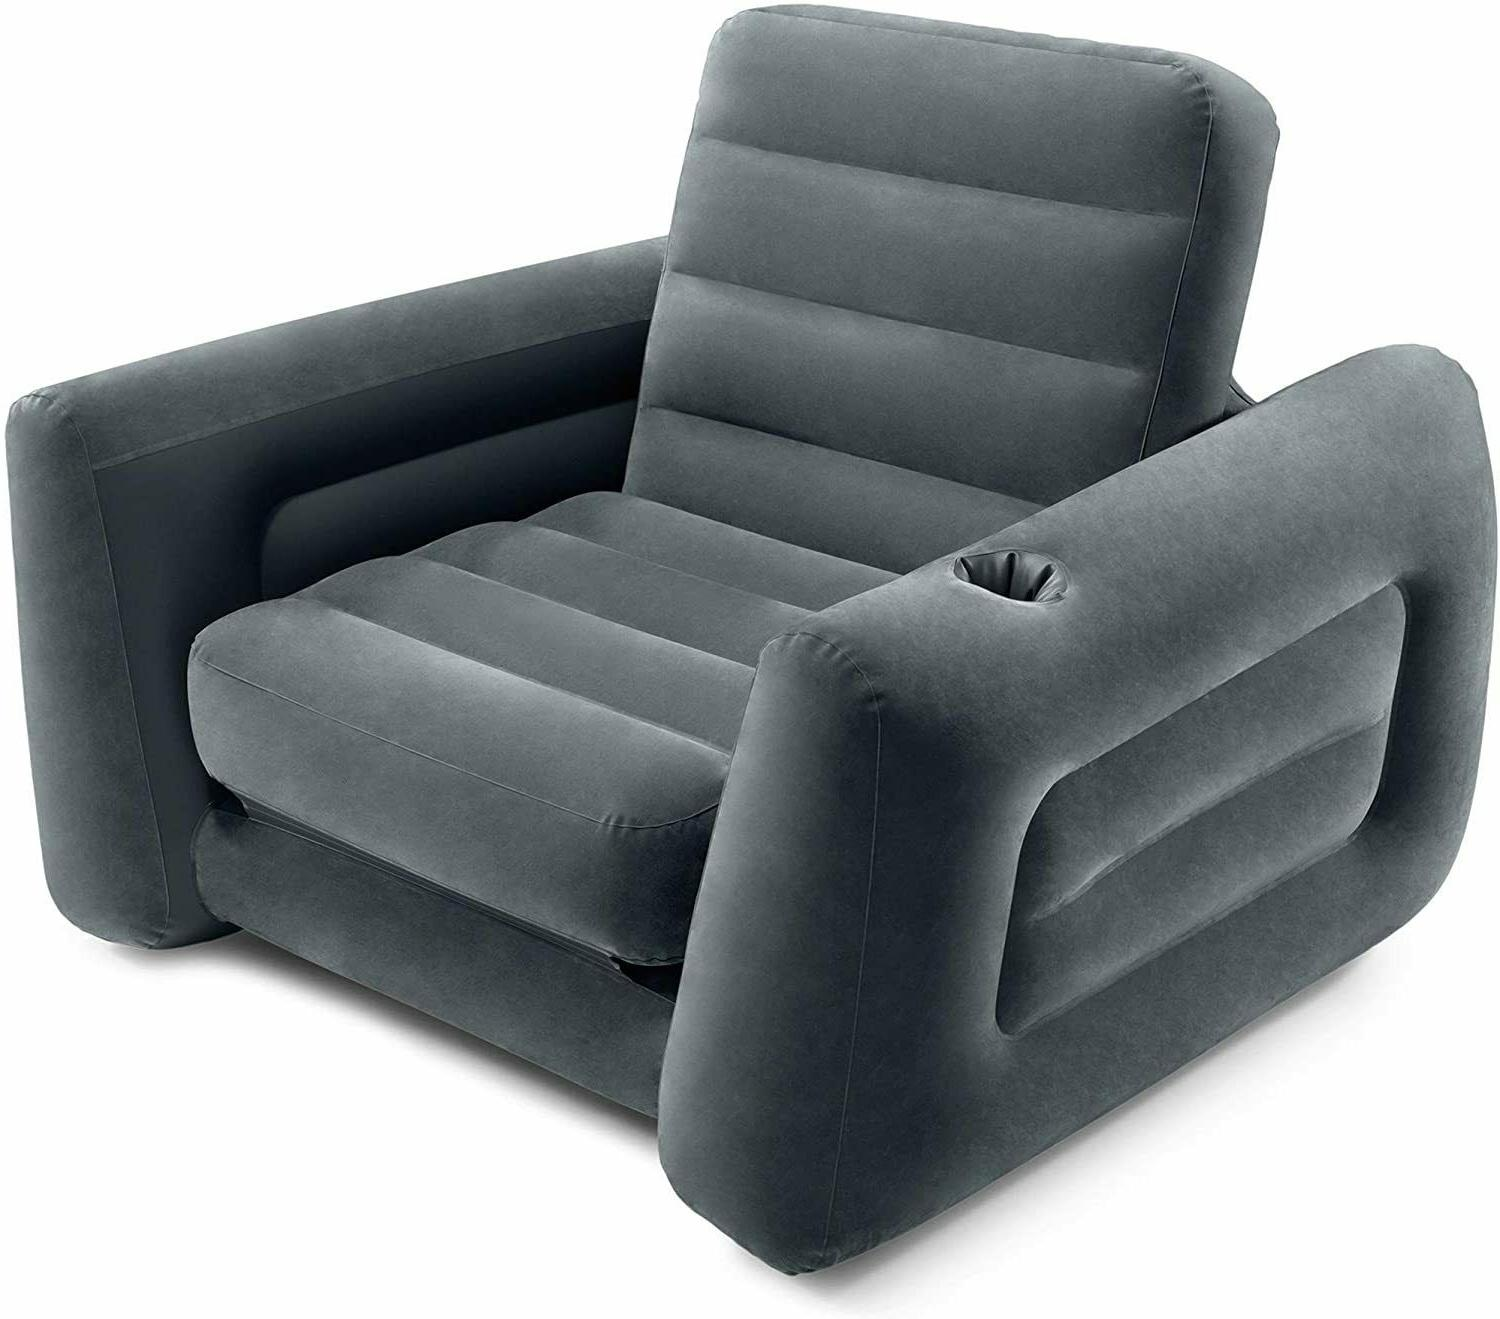 inflatable pull out sofa chair sleeper